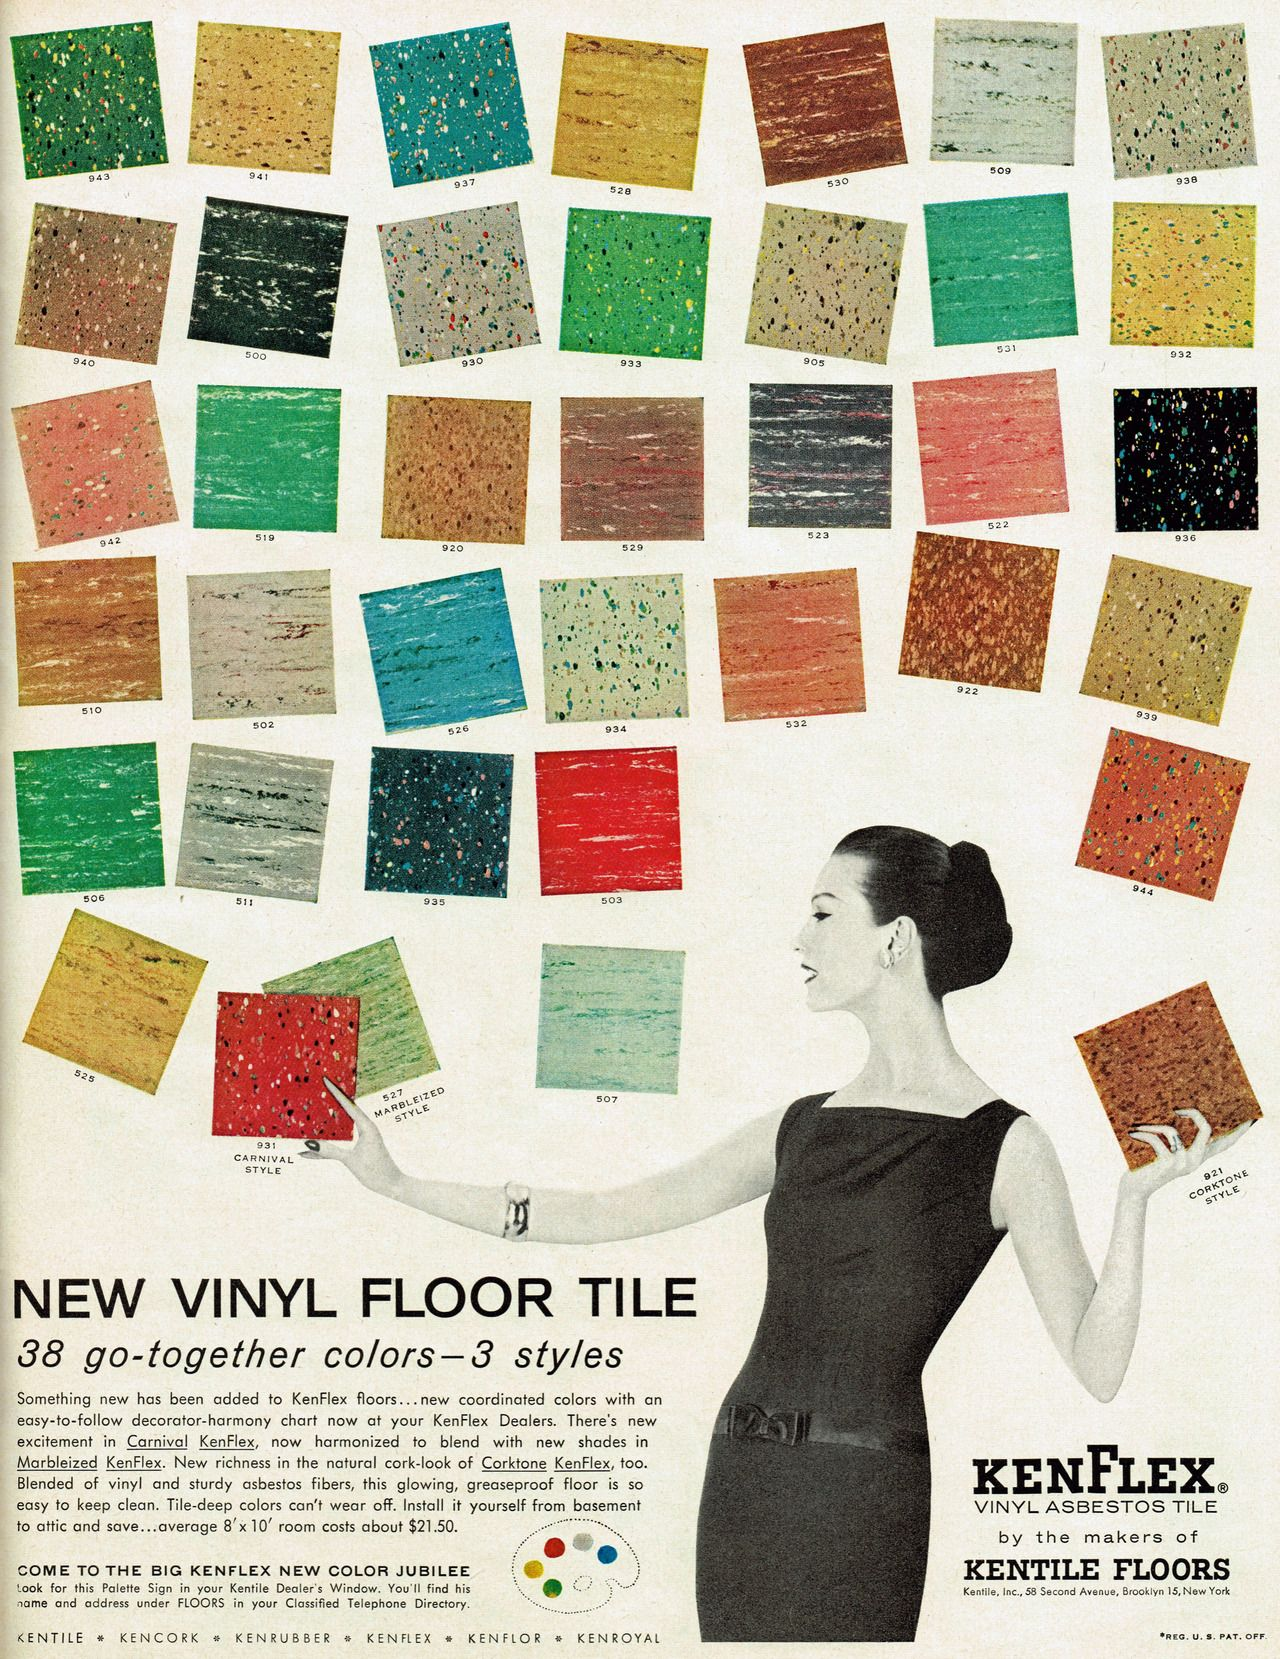 kenflex vinyl asbestos tile, 1956. she's so casually handling